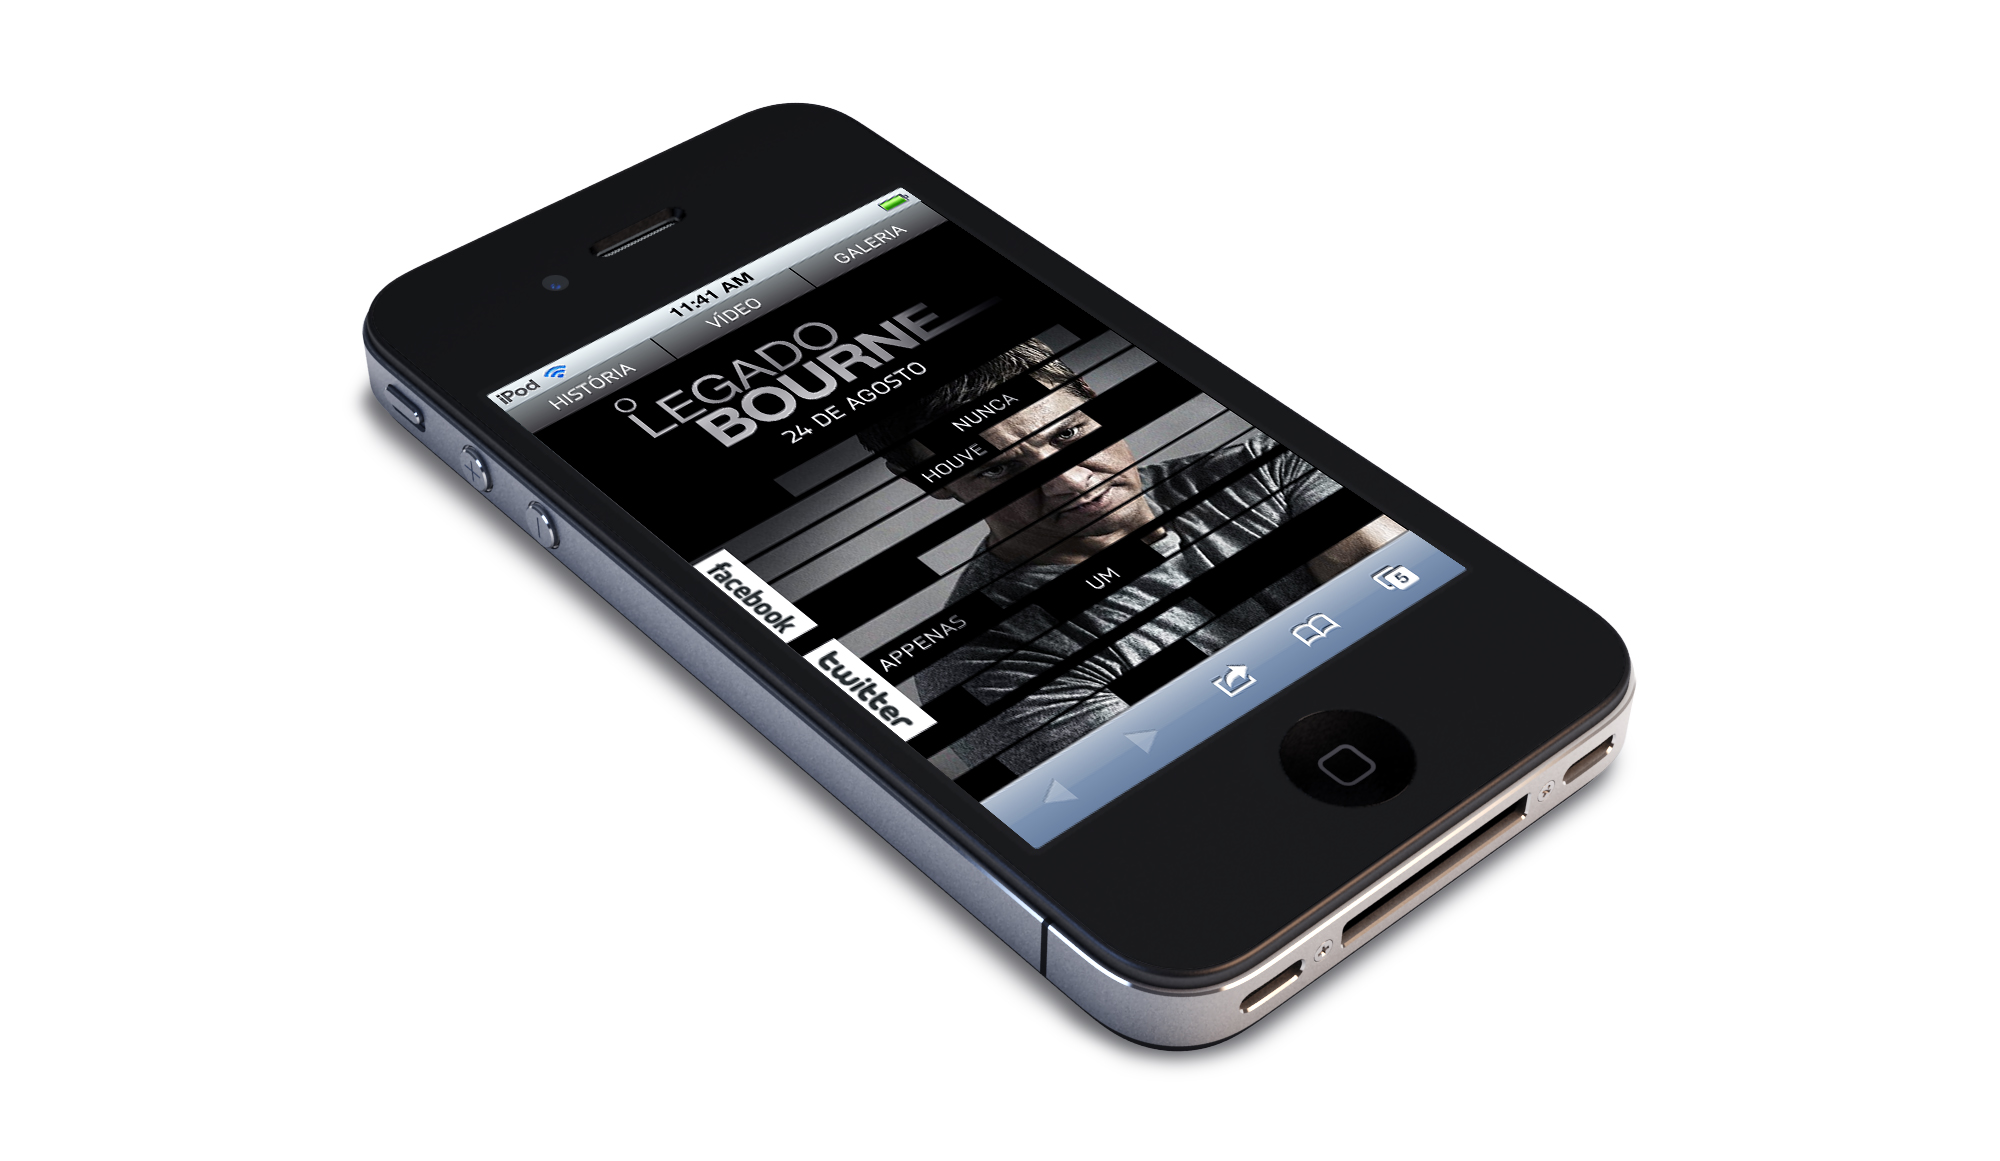 Bourne_Home_iPhone_Brazil.jpg